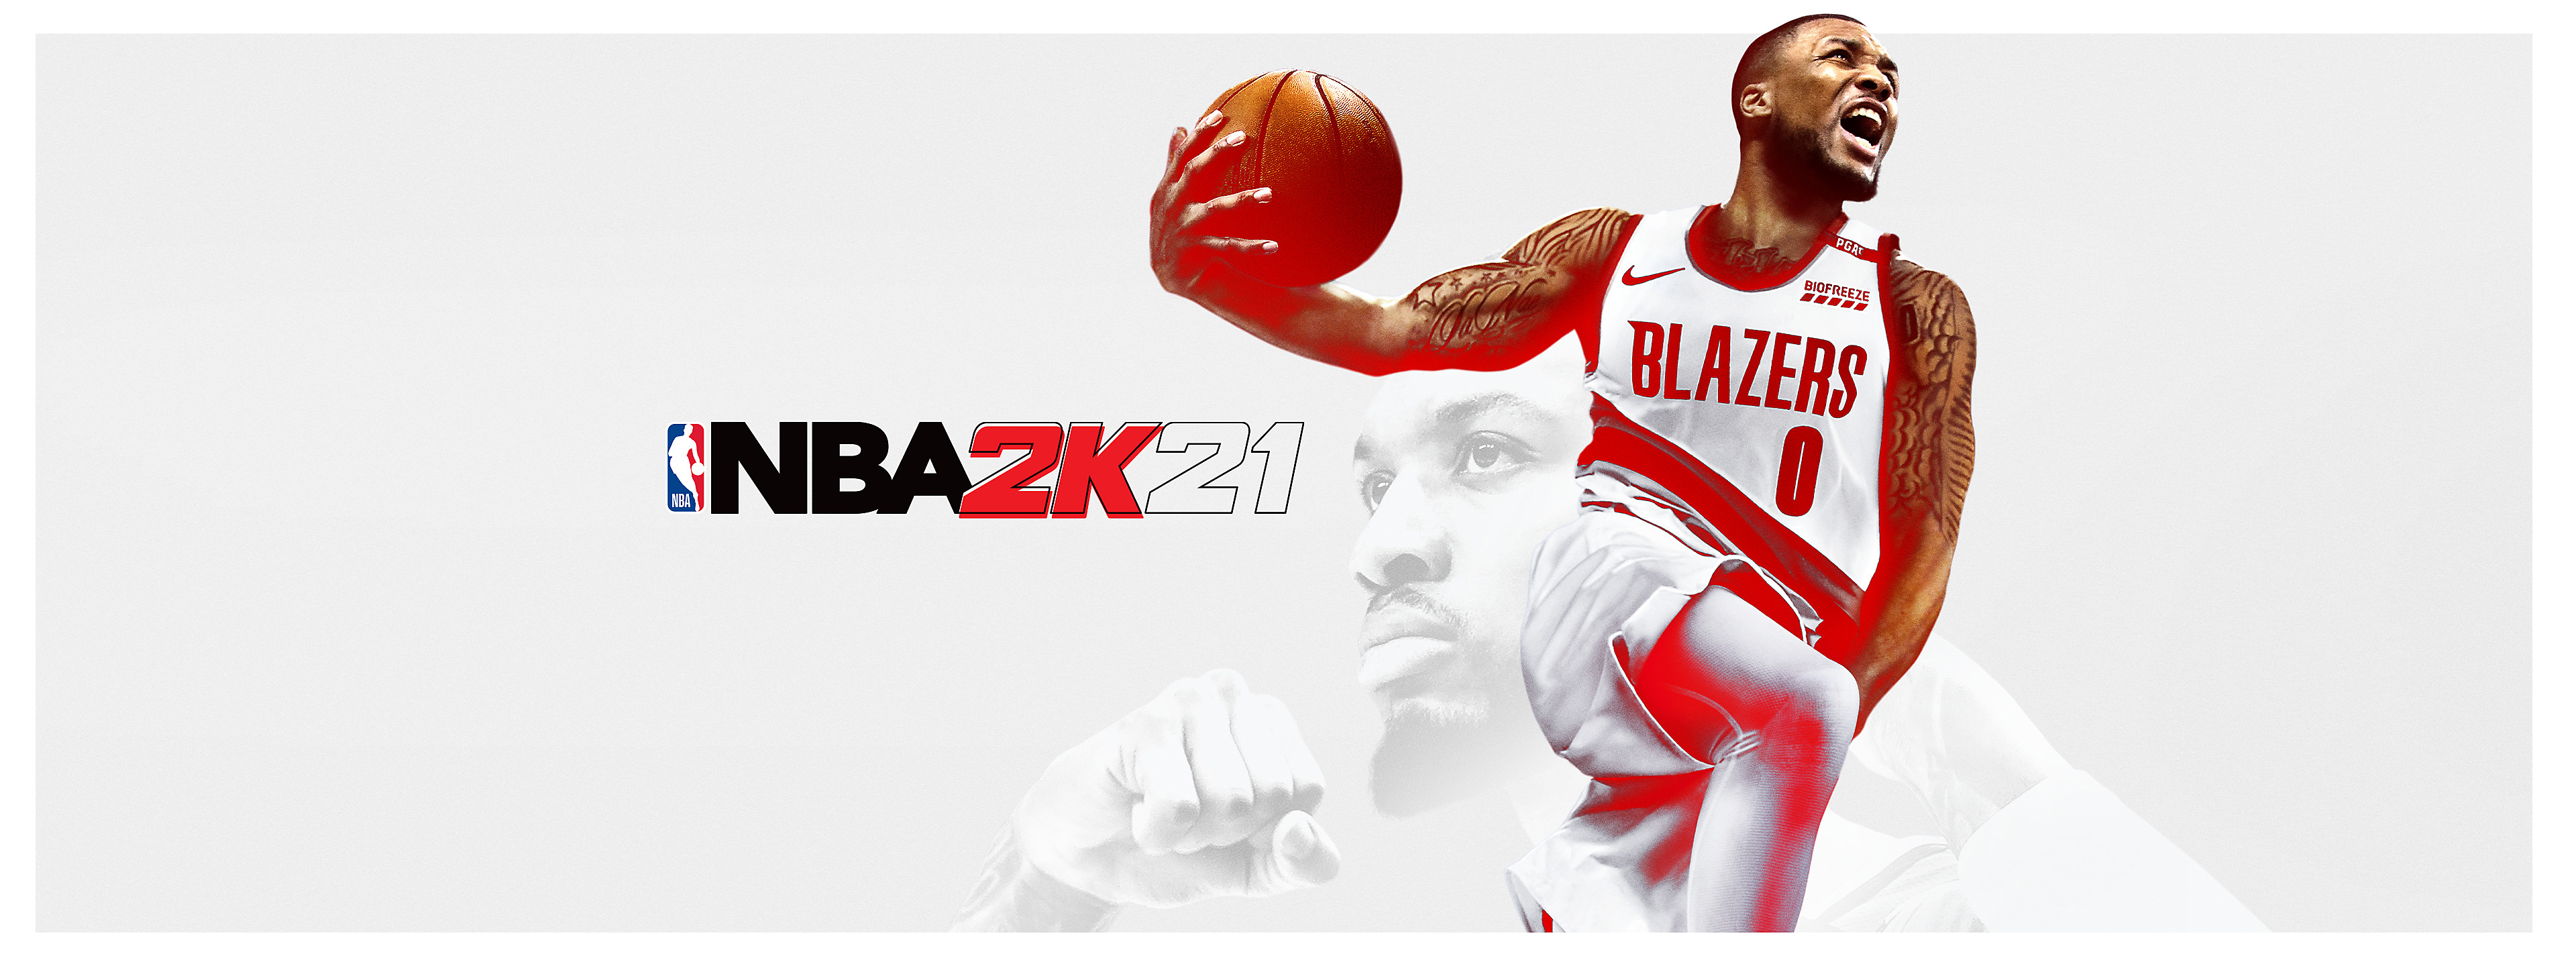 NBA 2K21 - Current-Gen Gameplay Trailer Now Available